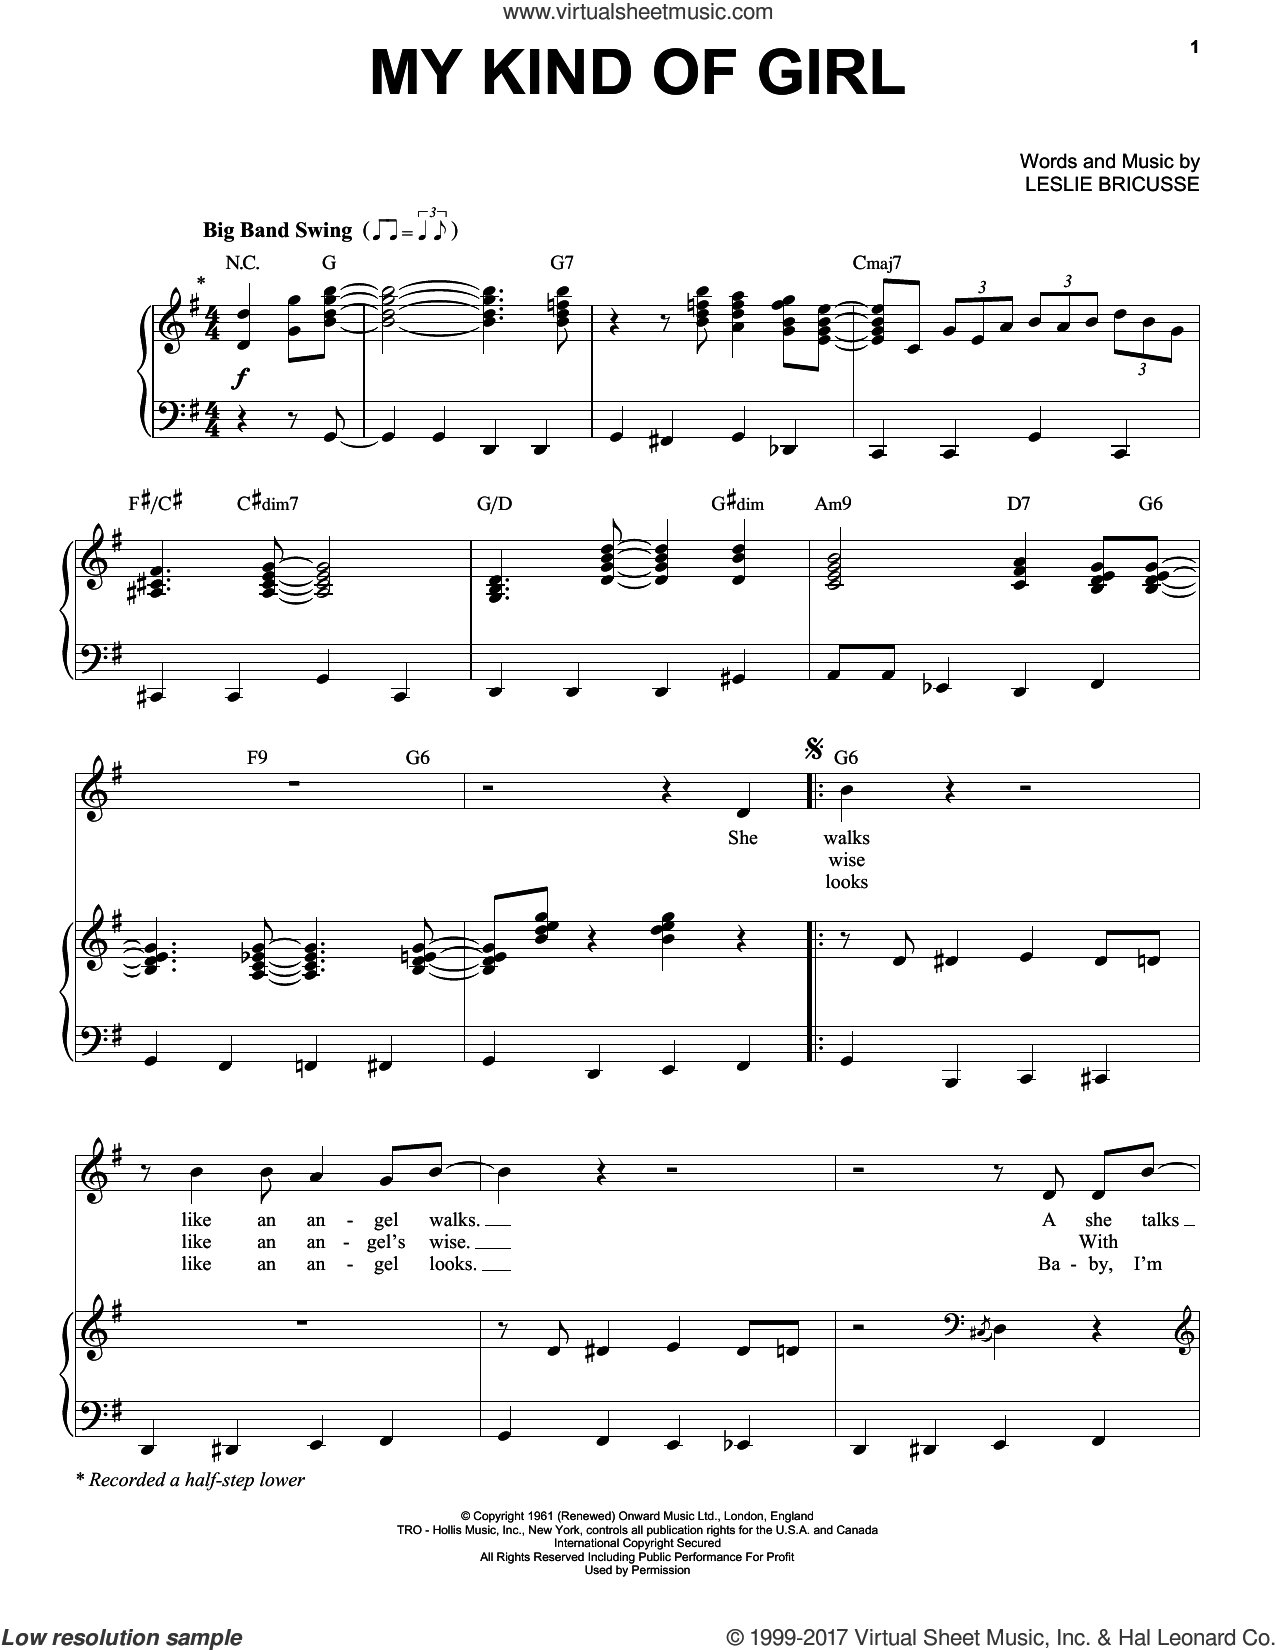 My Kind Of Girl sheet music for voice and piano by Michael Buble, Michael BublA�A� and Leslie Bricusse. Score Image Preview.